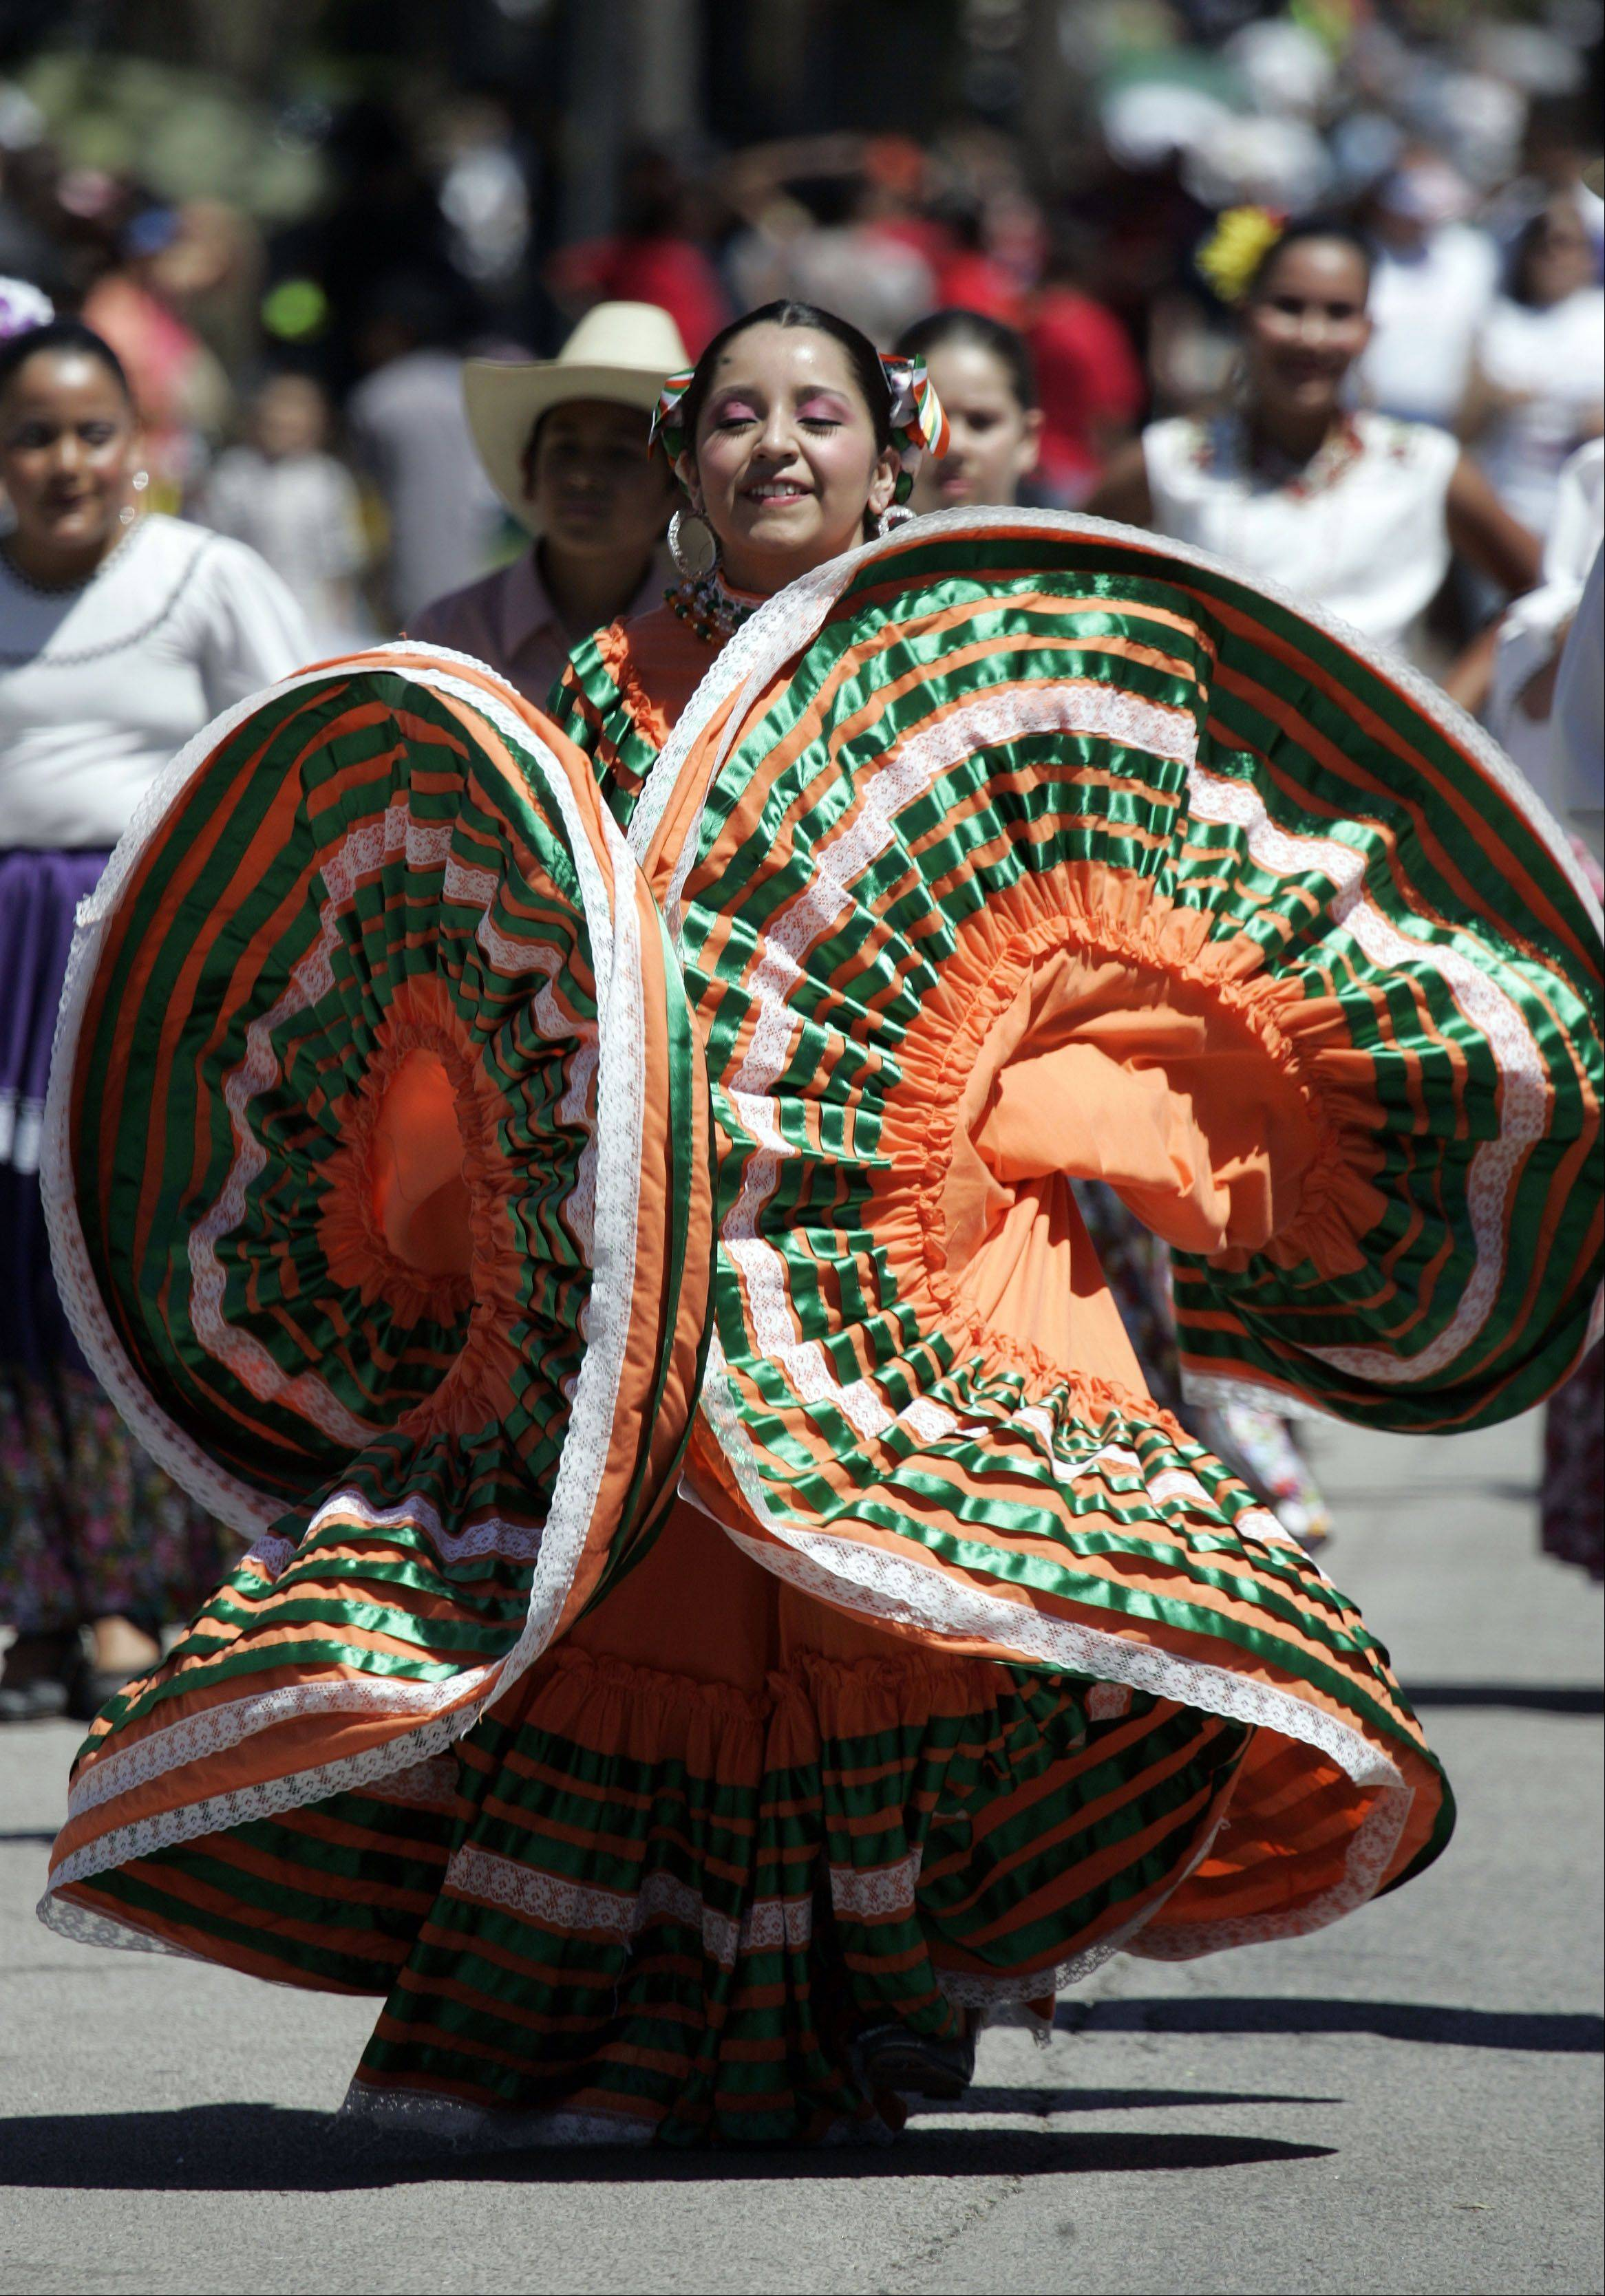 Elgin's Ballet Folkl�rico Huehuecoyotl will be among the entertainers at iFest, Elgin's first international festival, set for noon to 11 p.m. Saturday, Sept. 1, in Festival Park. A parade at 11 a.m. through downtown Elgin will kick off the event.